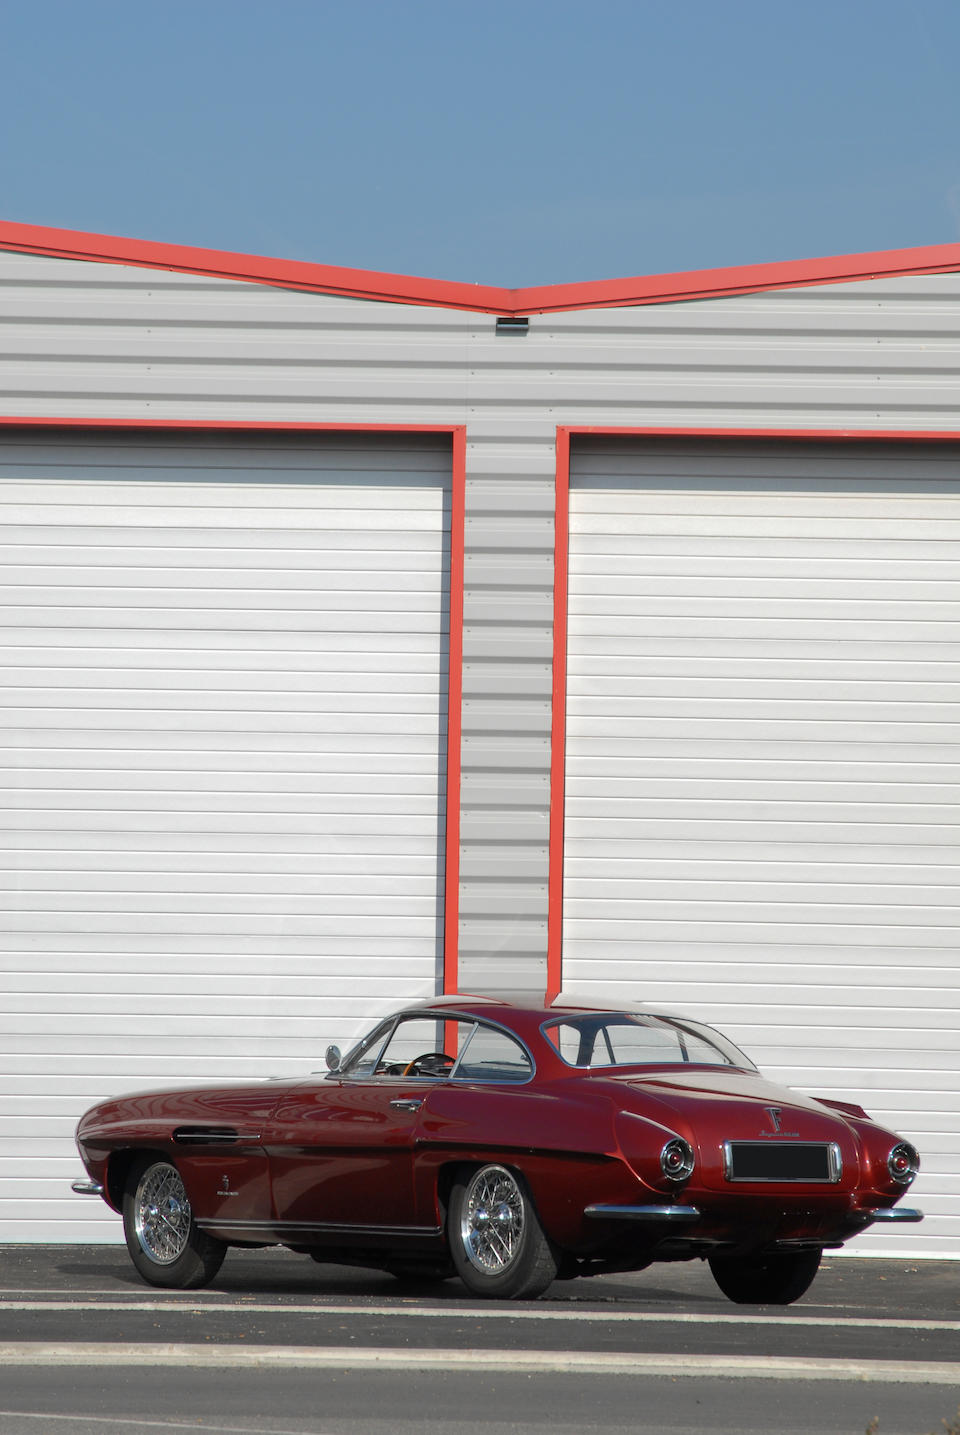 One of only three,1952 Jaguar 'Supersonic' Coupé